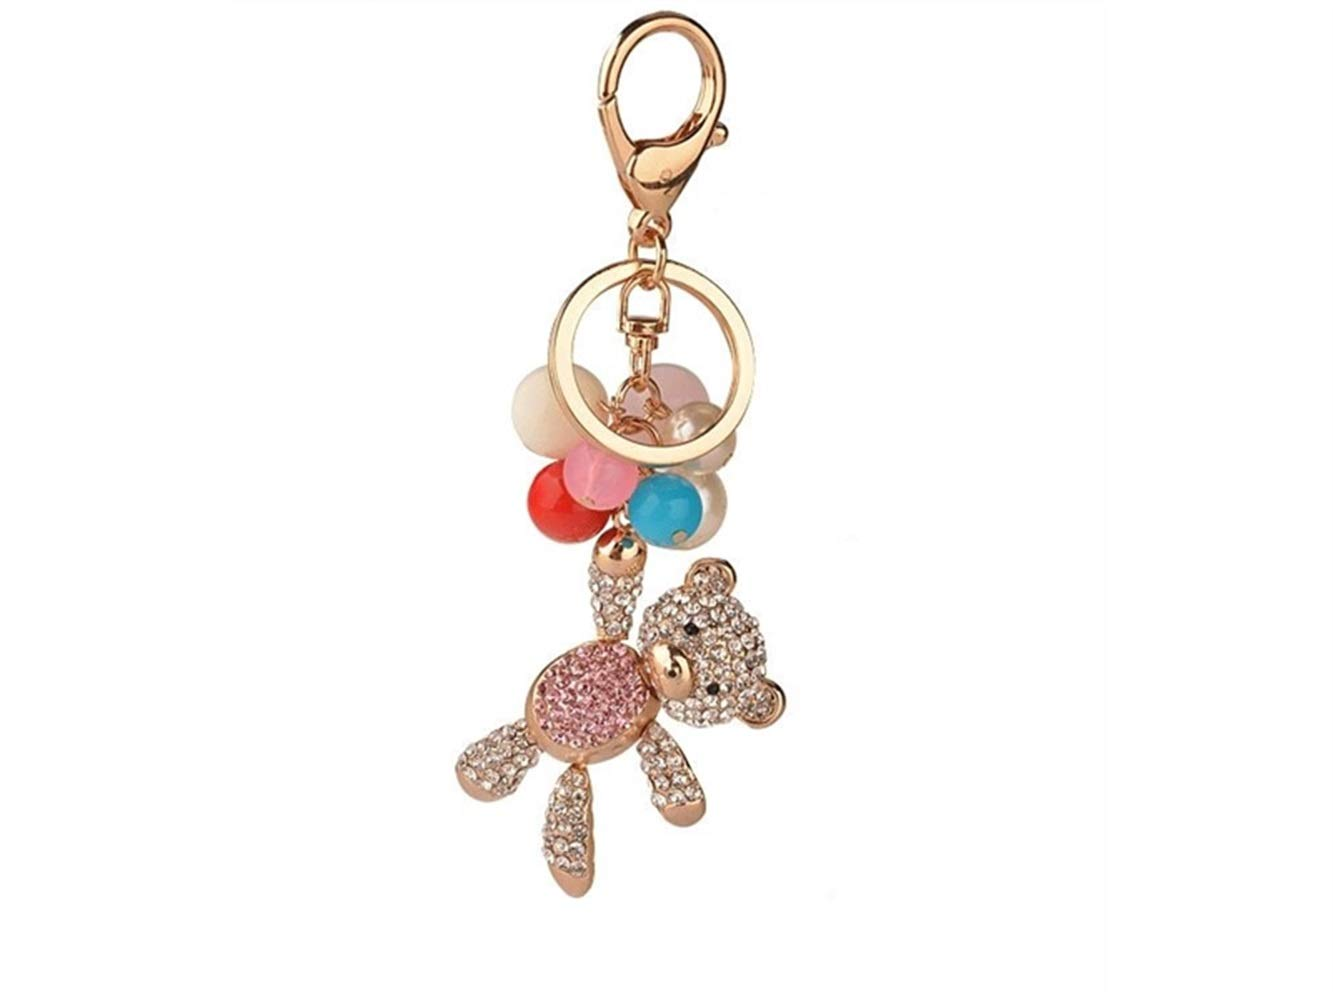 Yunqir Lightweight Balloon Bear Alloy Keychain Handbag Pendant Car Keyring for Women Lady Girls Decoration (Pink)